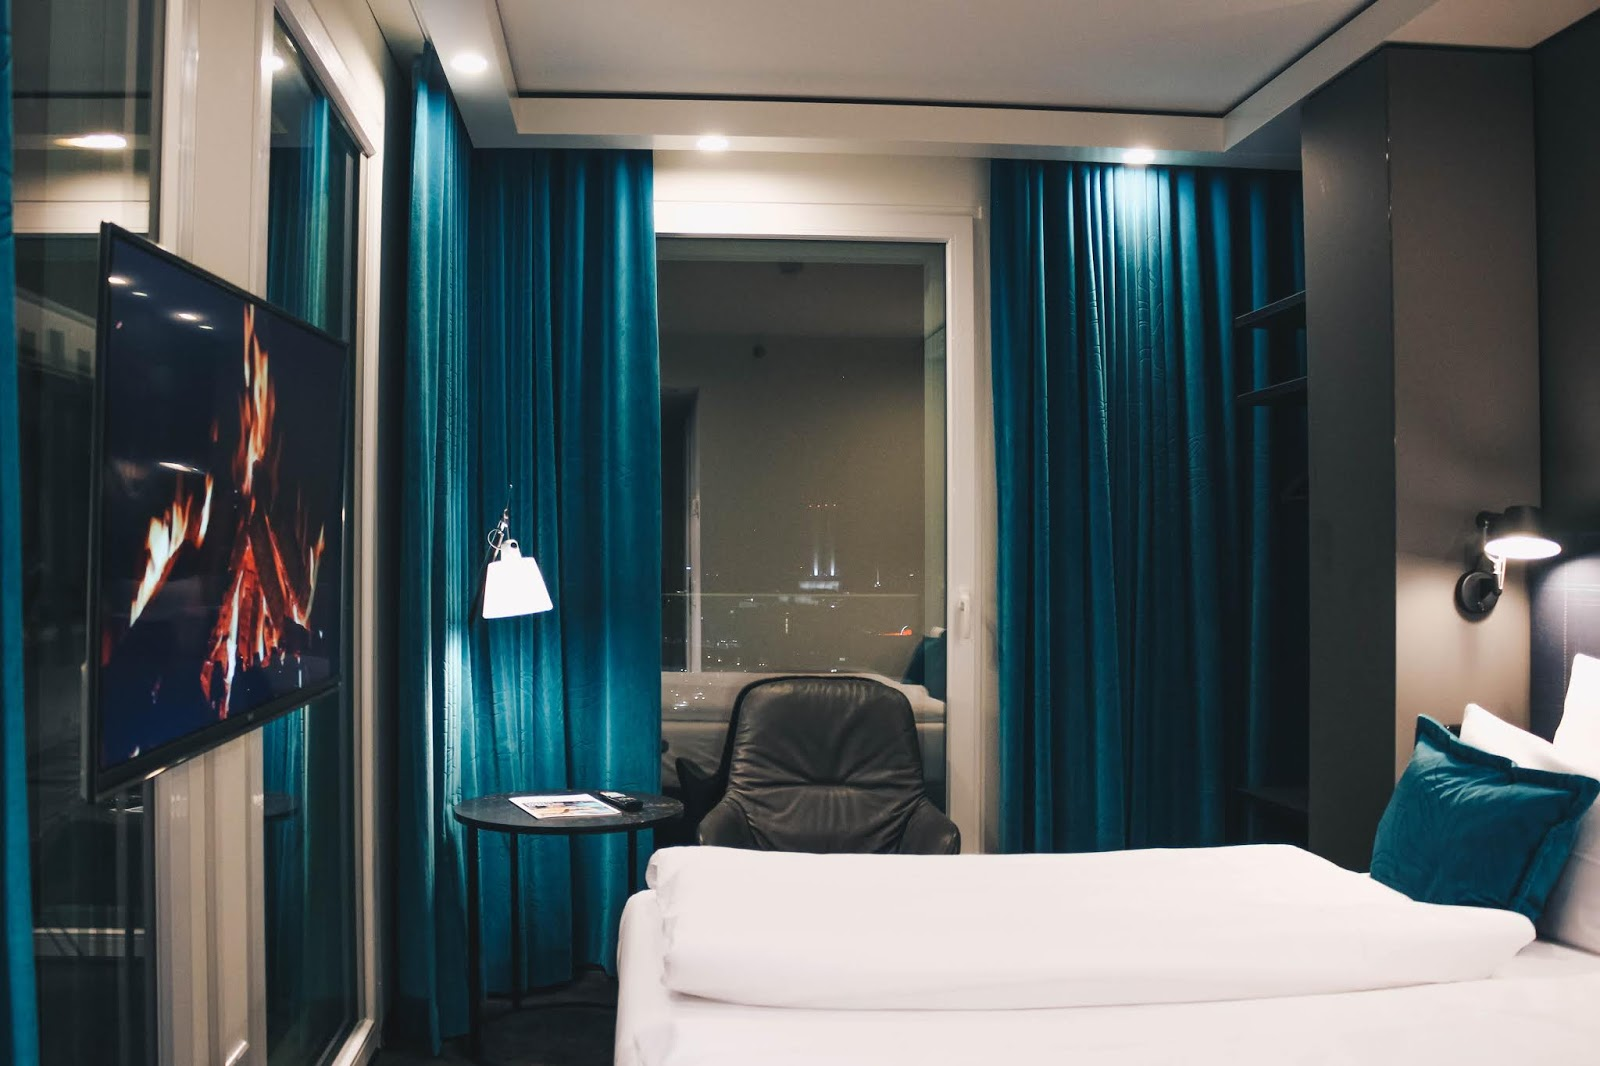 Sessel Von Motel One Hotel - Motel One Berlin-alexanderplatz | Fashion Whisper